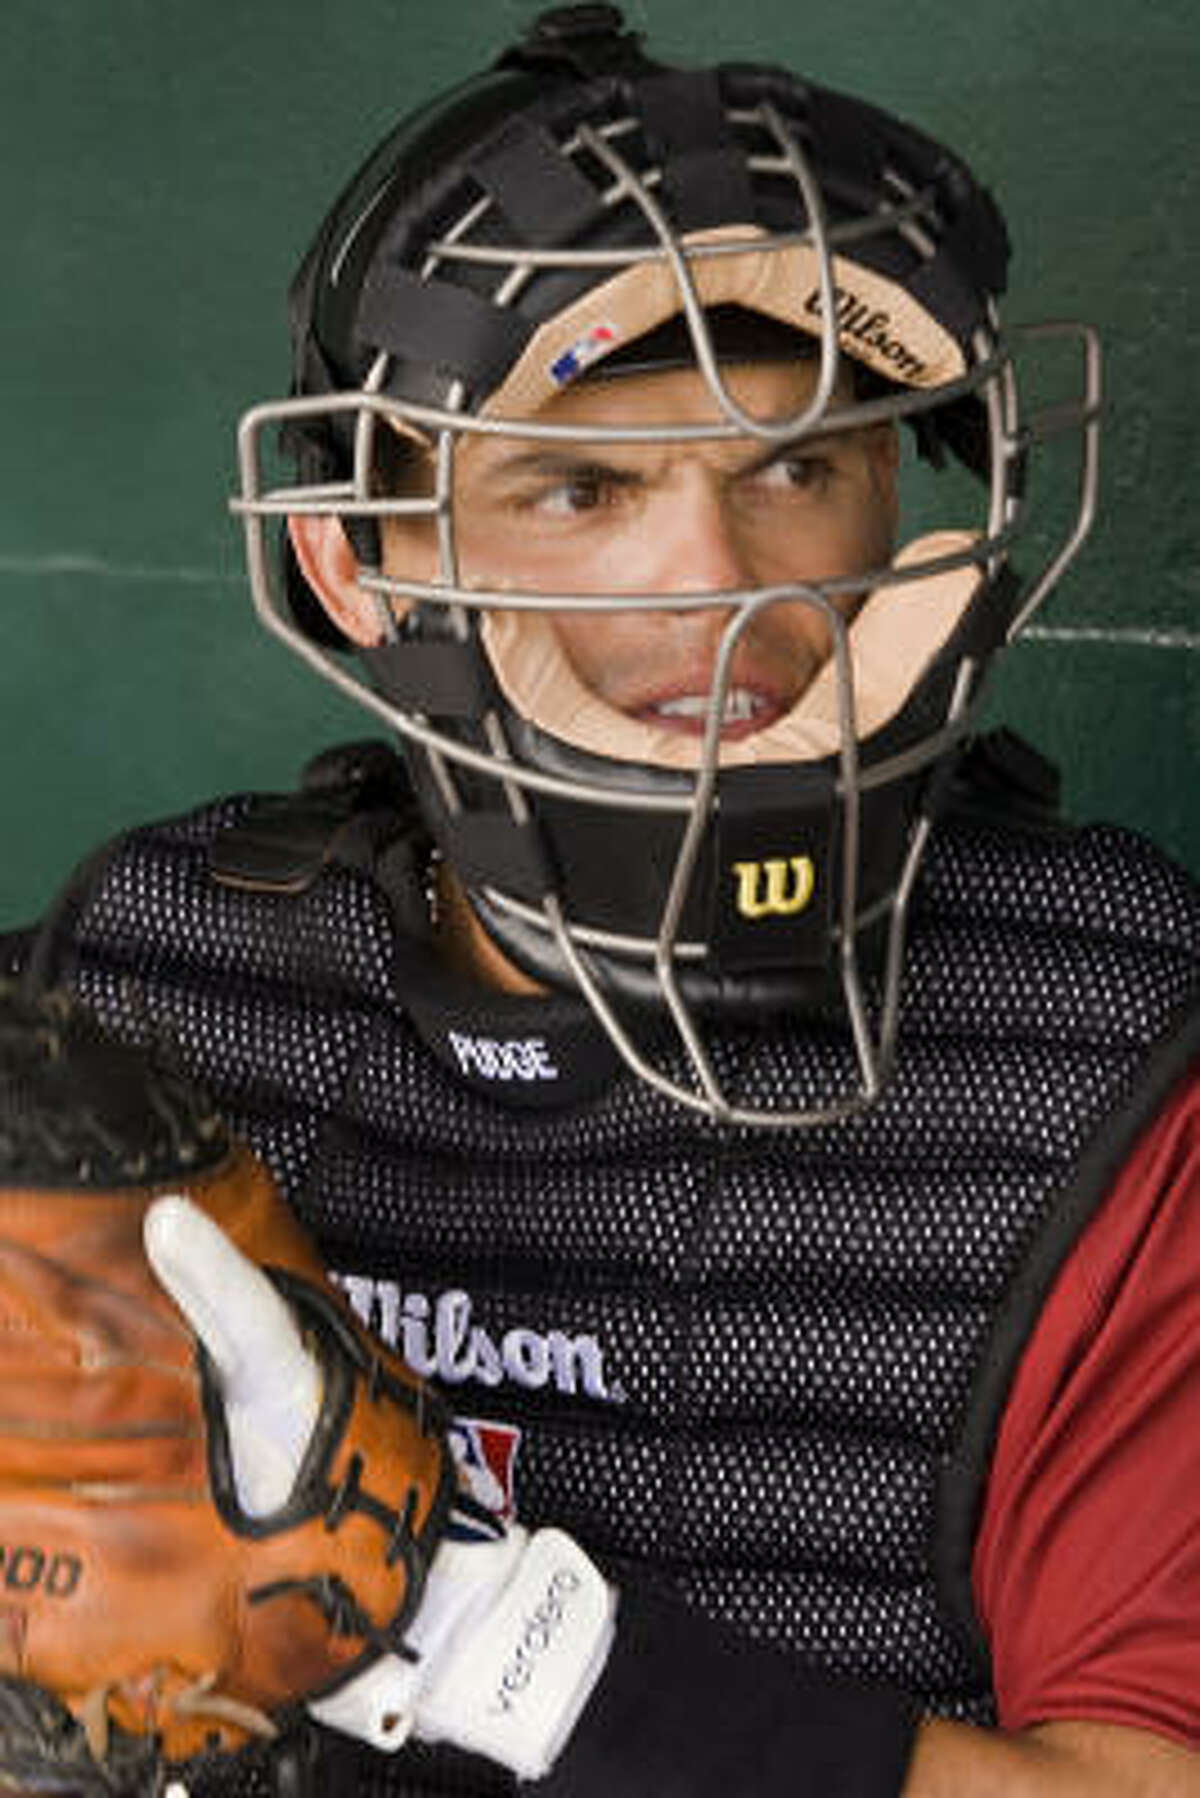 Catcher Ivan 'Pudge' Rogdriguez waits to take the field prior to he first spring training game with the Astros.